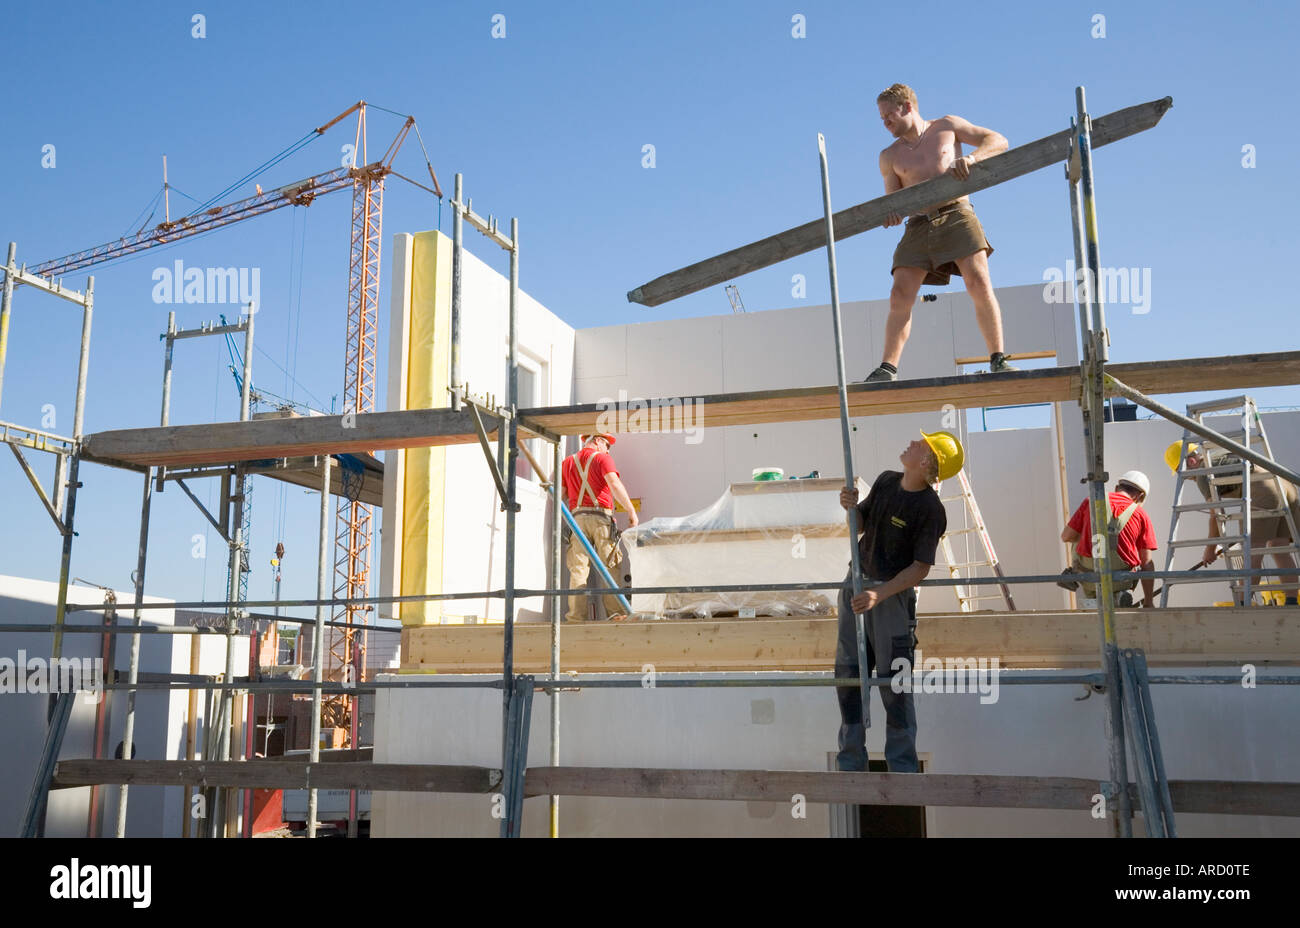 Scaffolders At Work On A Prefabricated House Construction Site